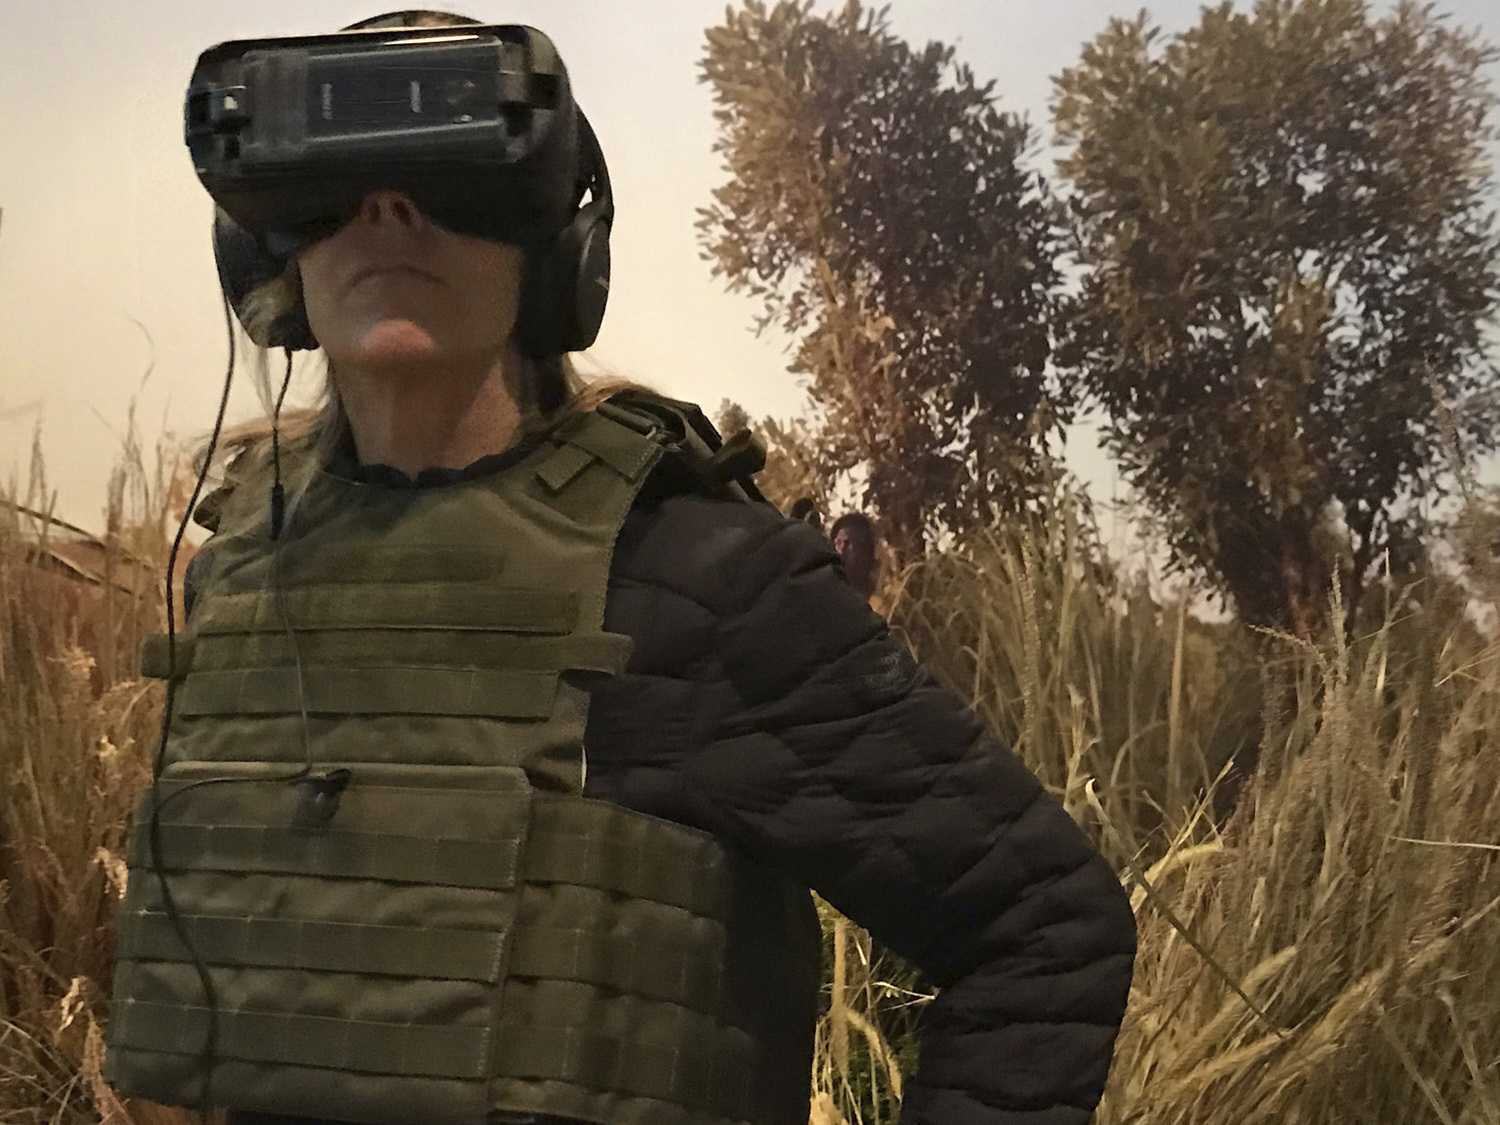 Kathryn Bigelow on VR after her First Try: 'I Love It'